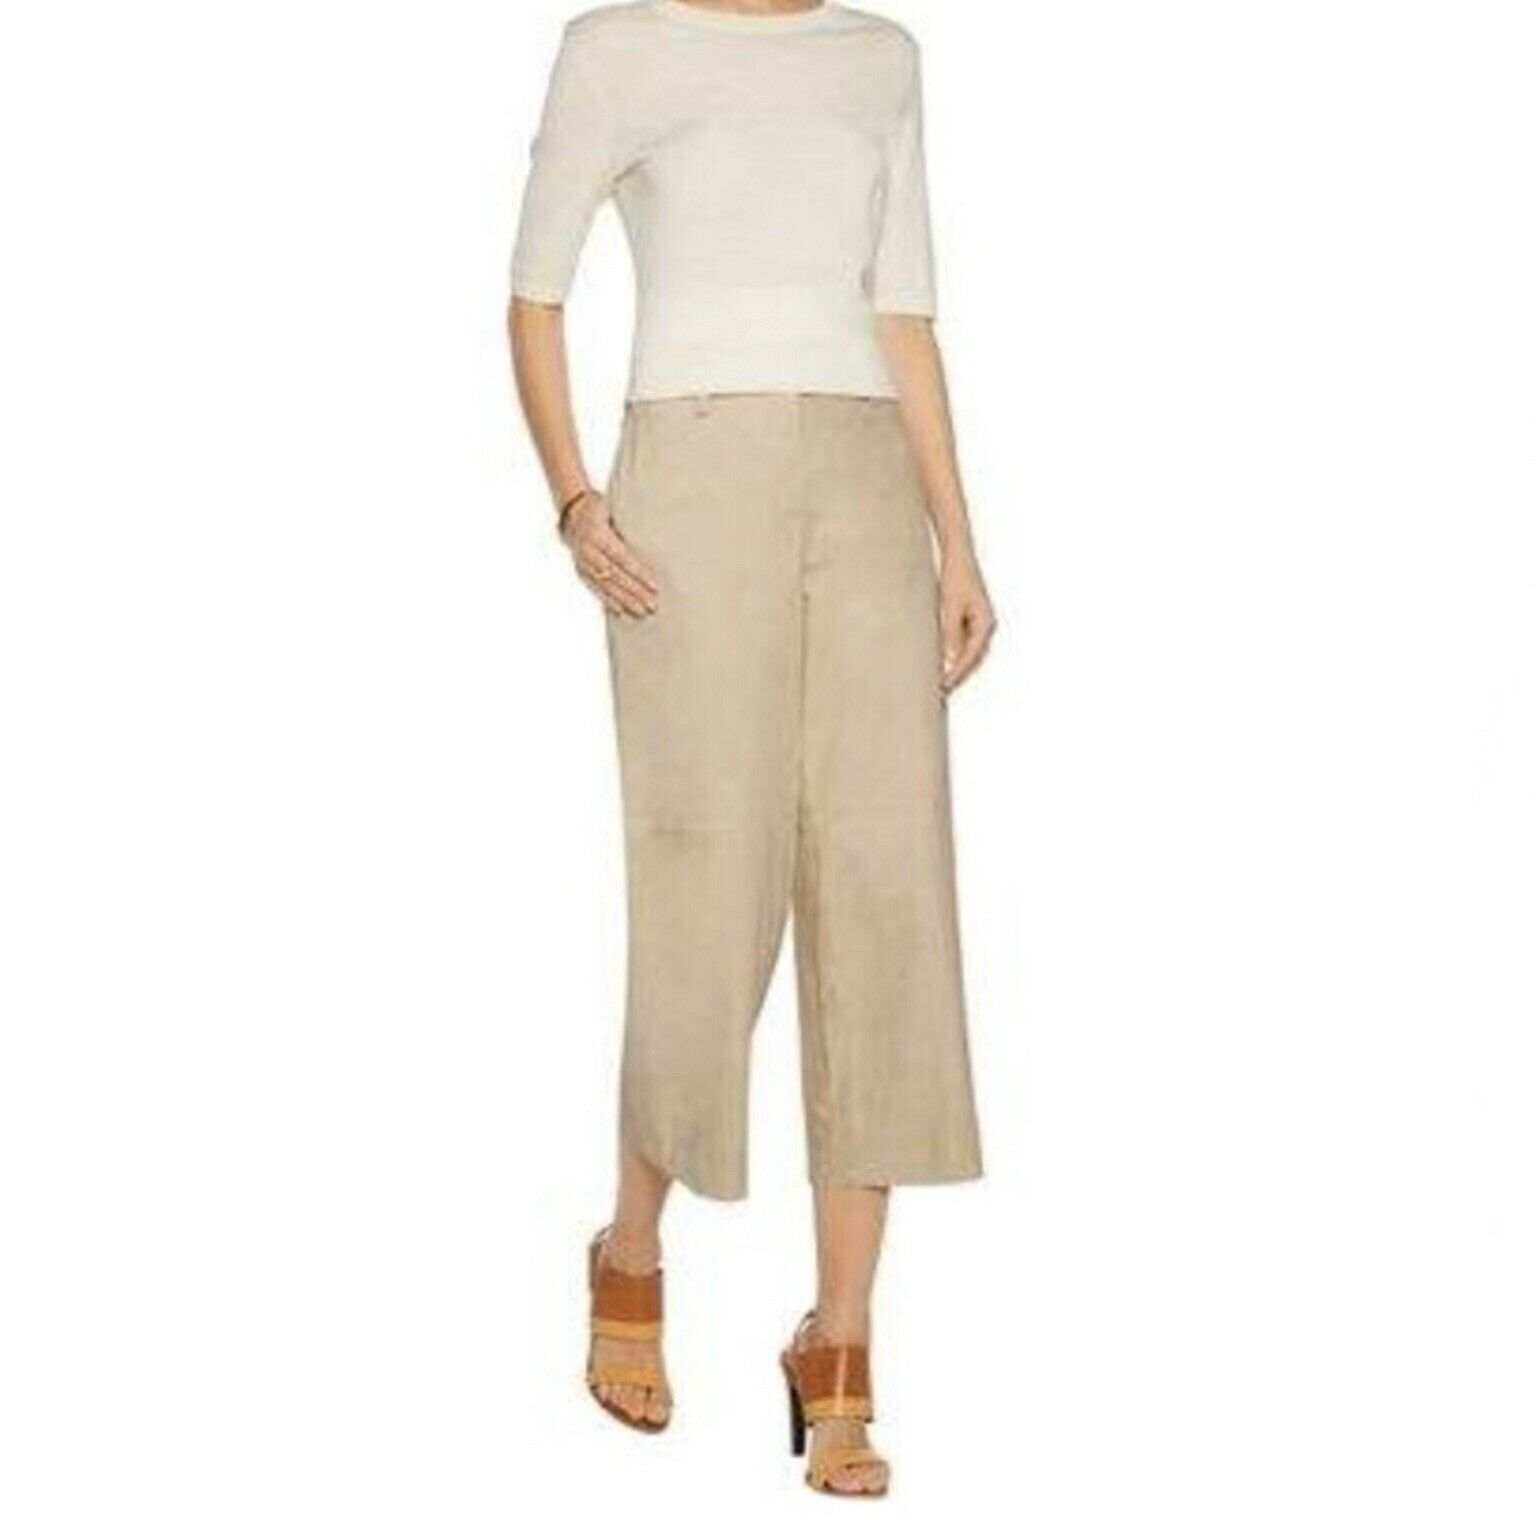 Theory Tennen Cropped Suede Wide-Leg Pants Size 2 MSRP